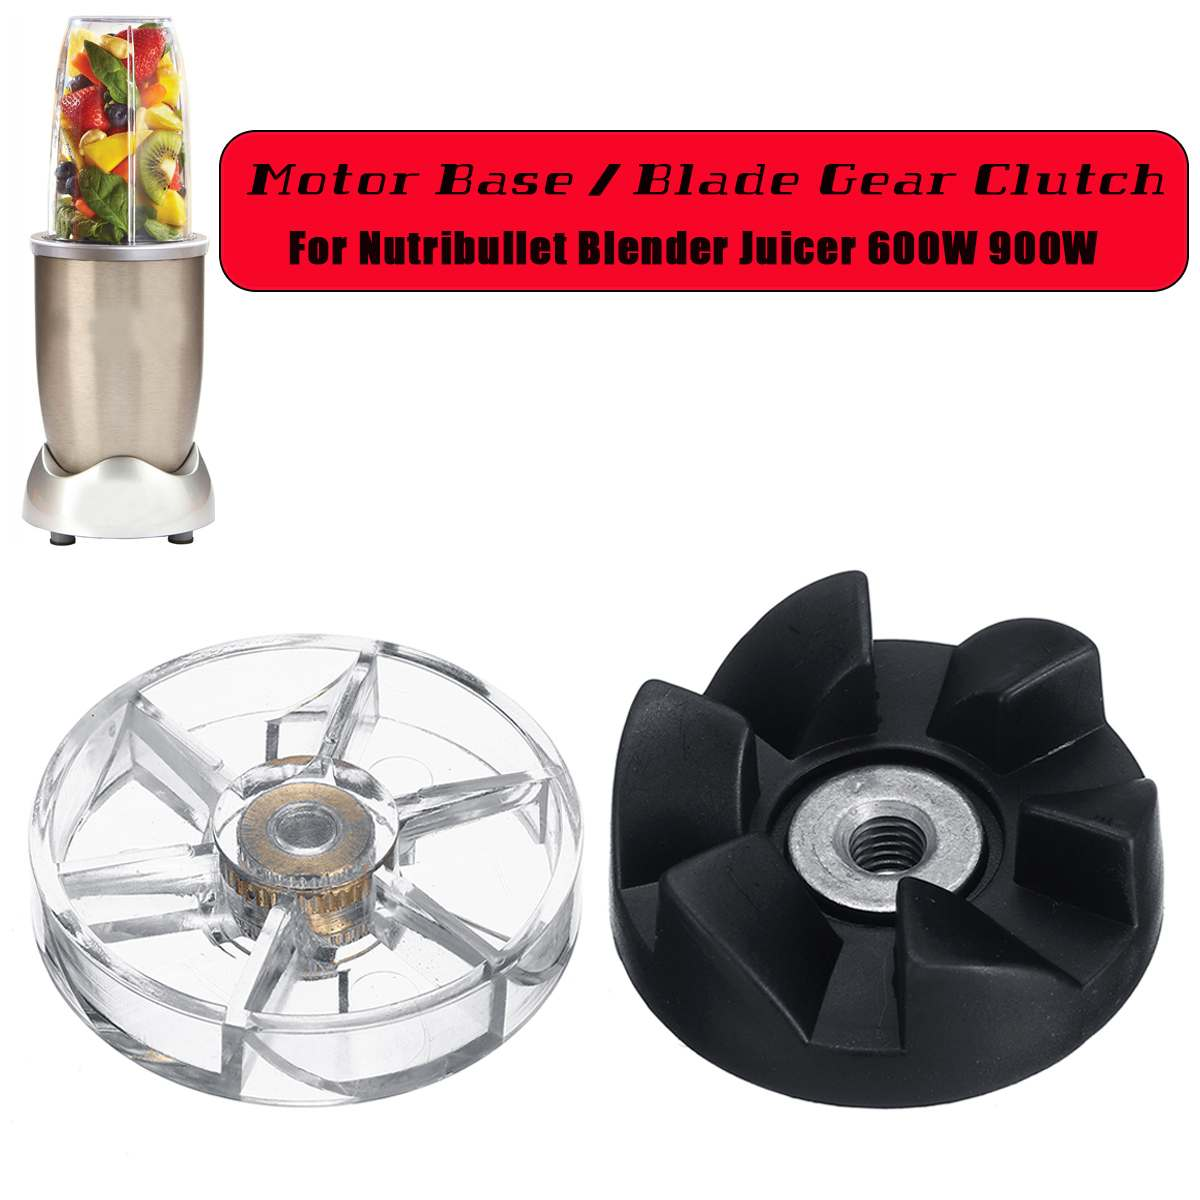 1pc Motor Base/Blade Gear Clutch Juicer Replacement Part For Nutribullet Juicer 600W/900W